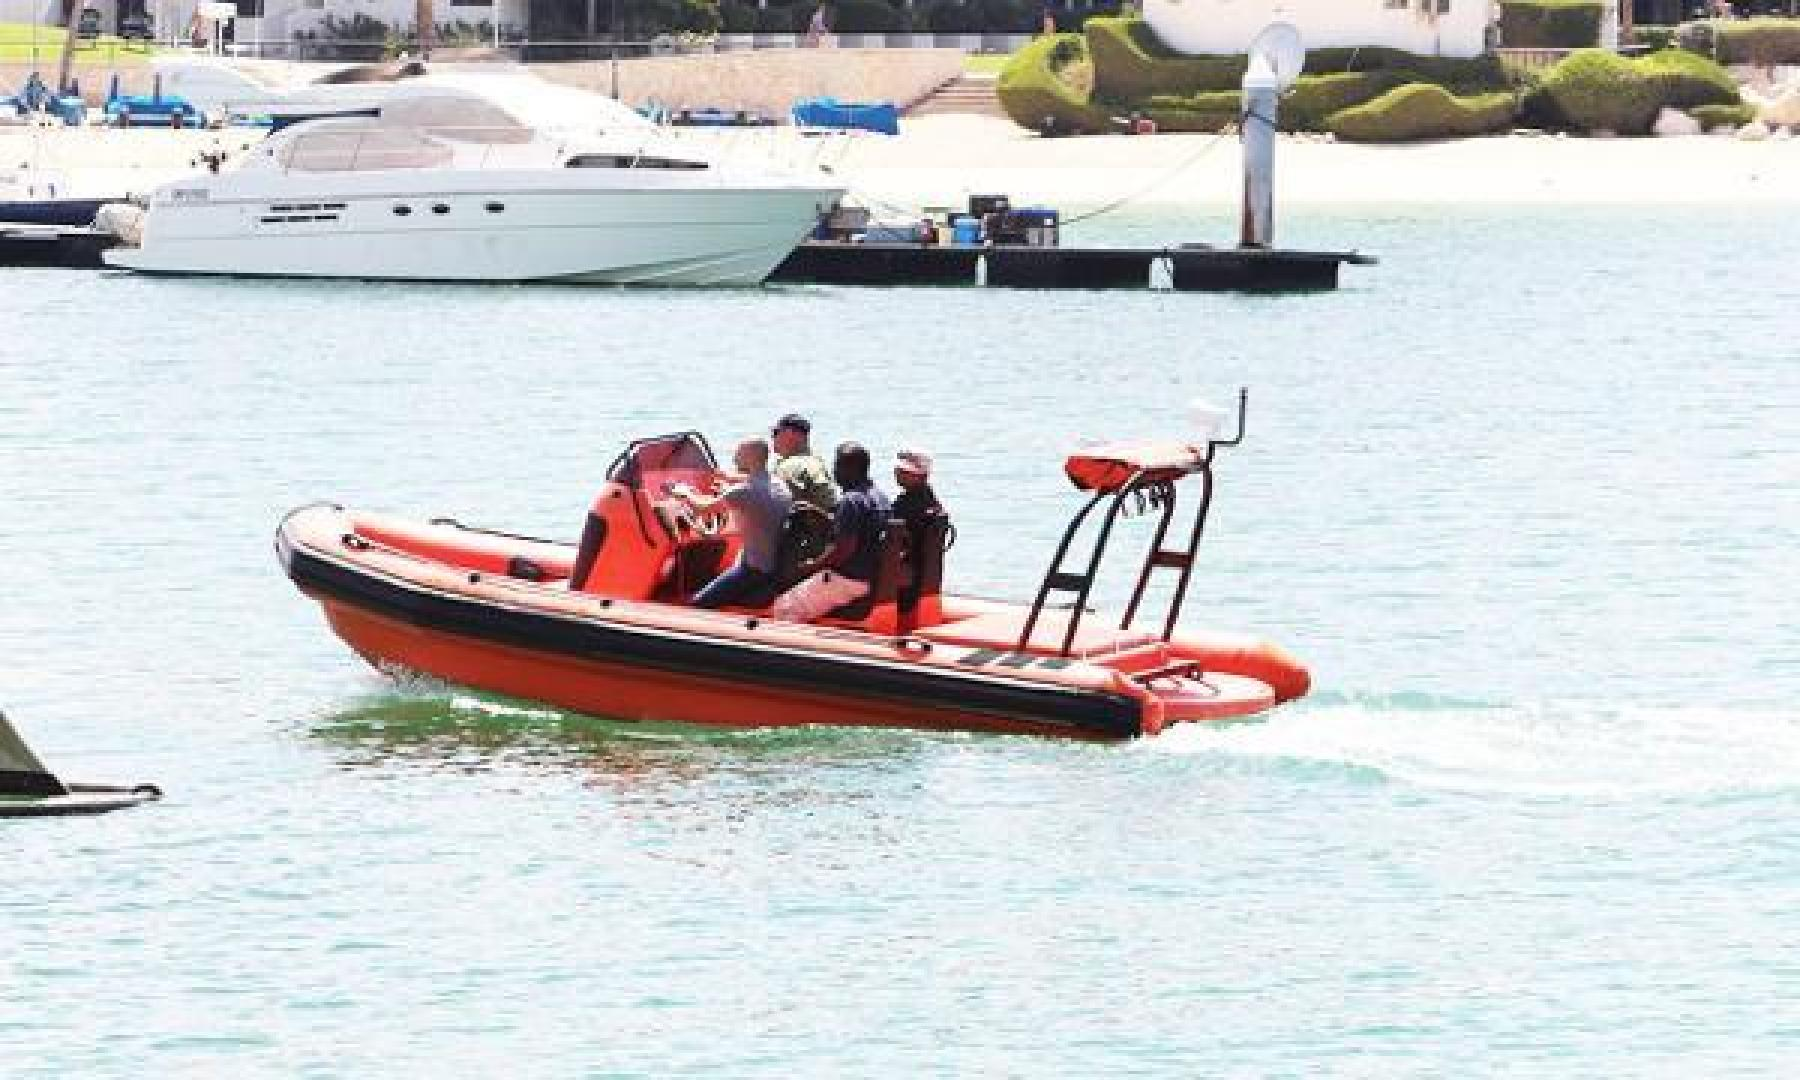 Ocean Craft Marine-9.5M RHIB Professional Search and Rescue 2020-Ocean Craft Marine 9.5M RHIB Professional Search and Rescue Fort Lauderdale-Florida-United States-1522805   Thumbnail